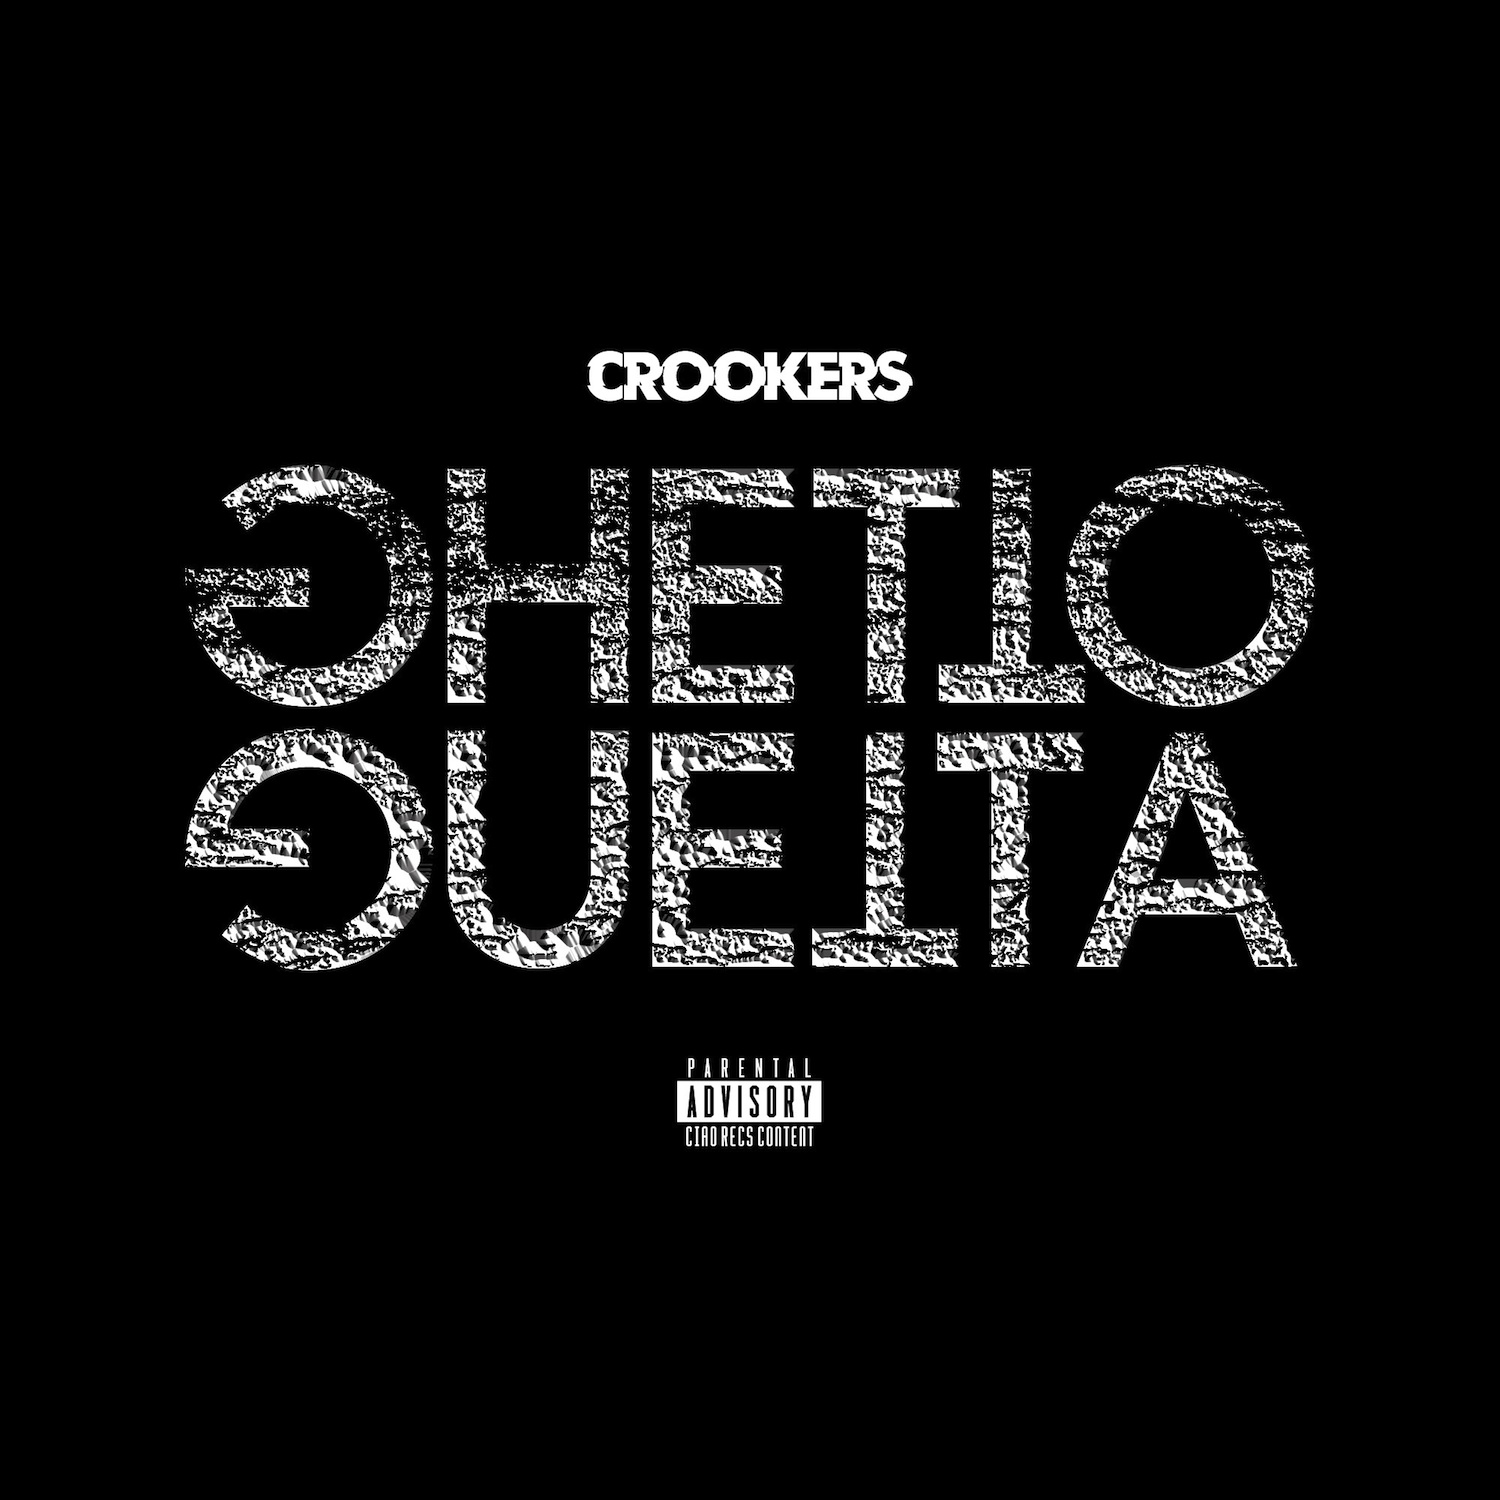 Crookers Ghetto Guetta Artwork FINAL 1500x1500